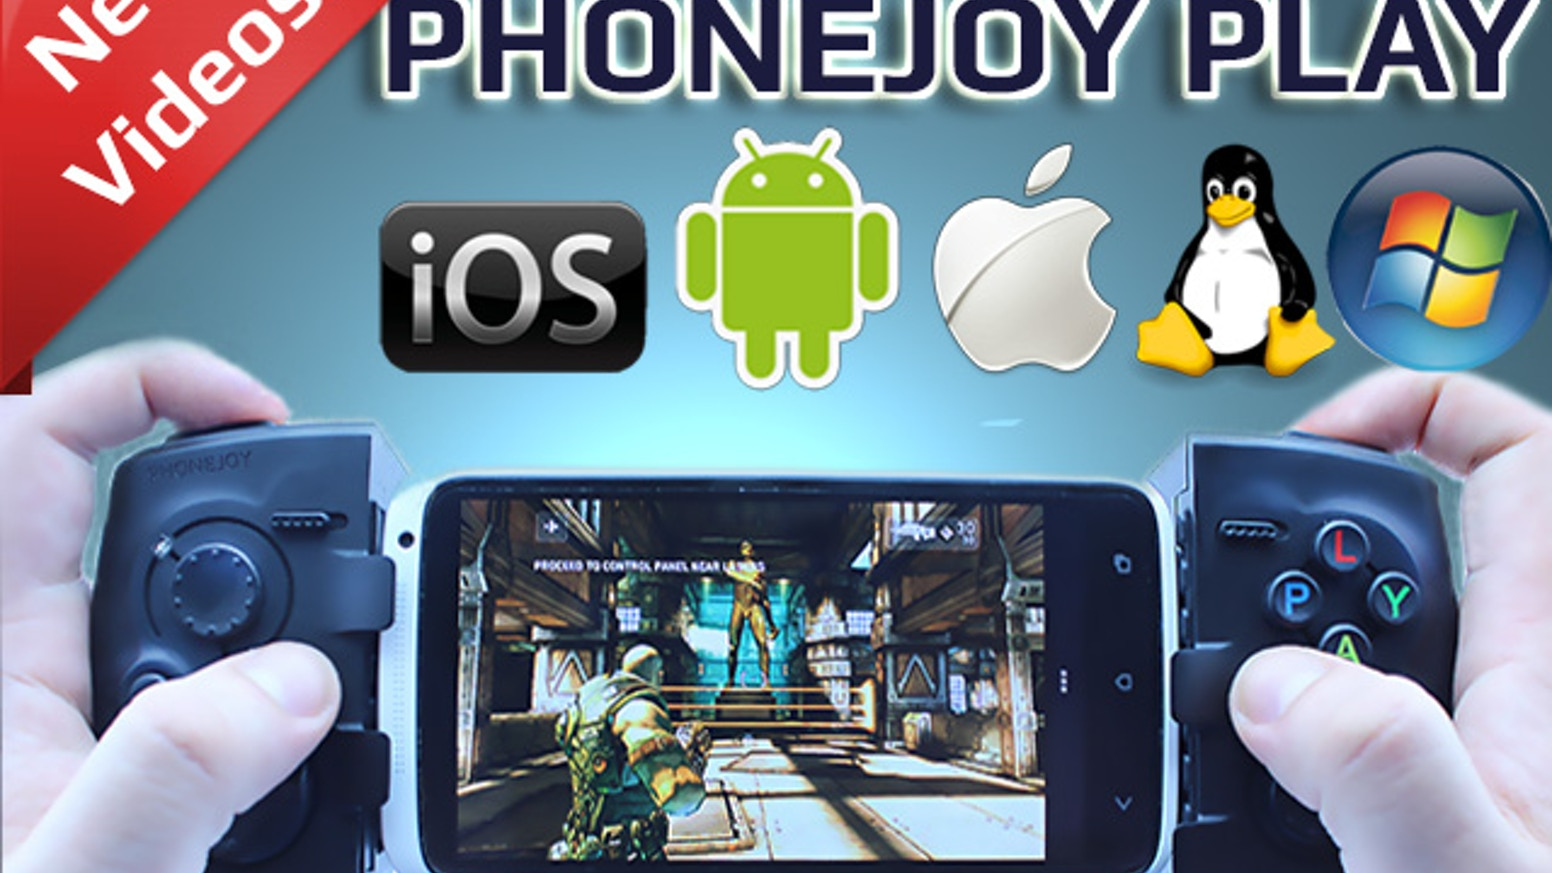 PhoneJoy Play: Turn your phone into a console! by PhoneJoy Solutions ...